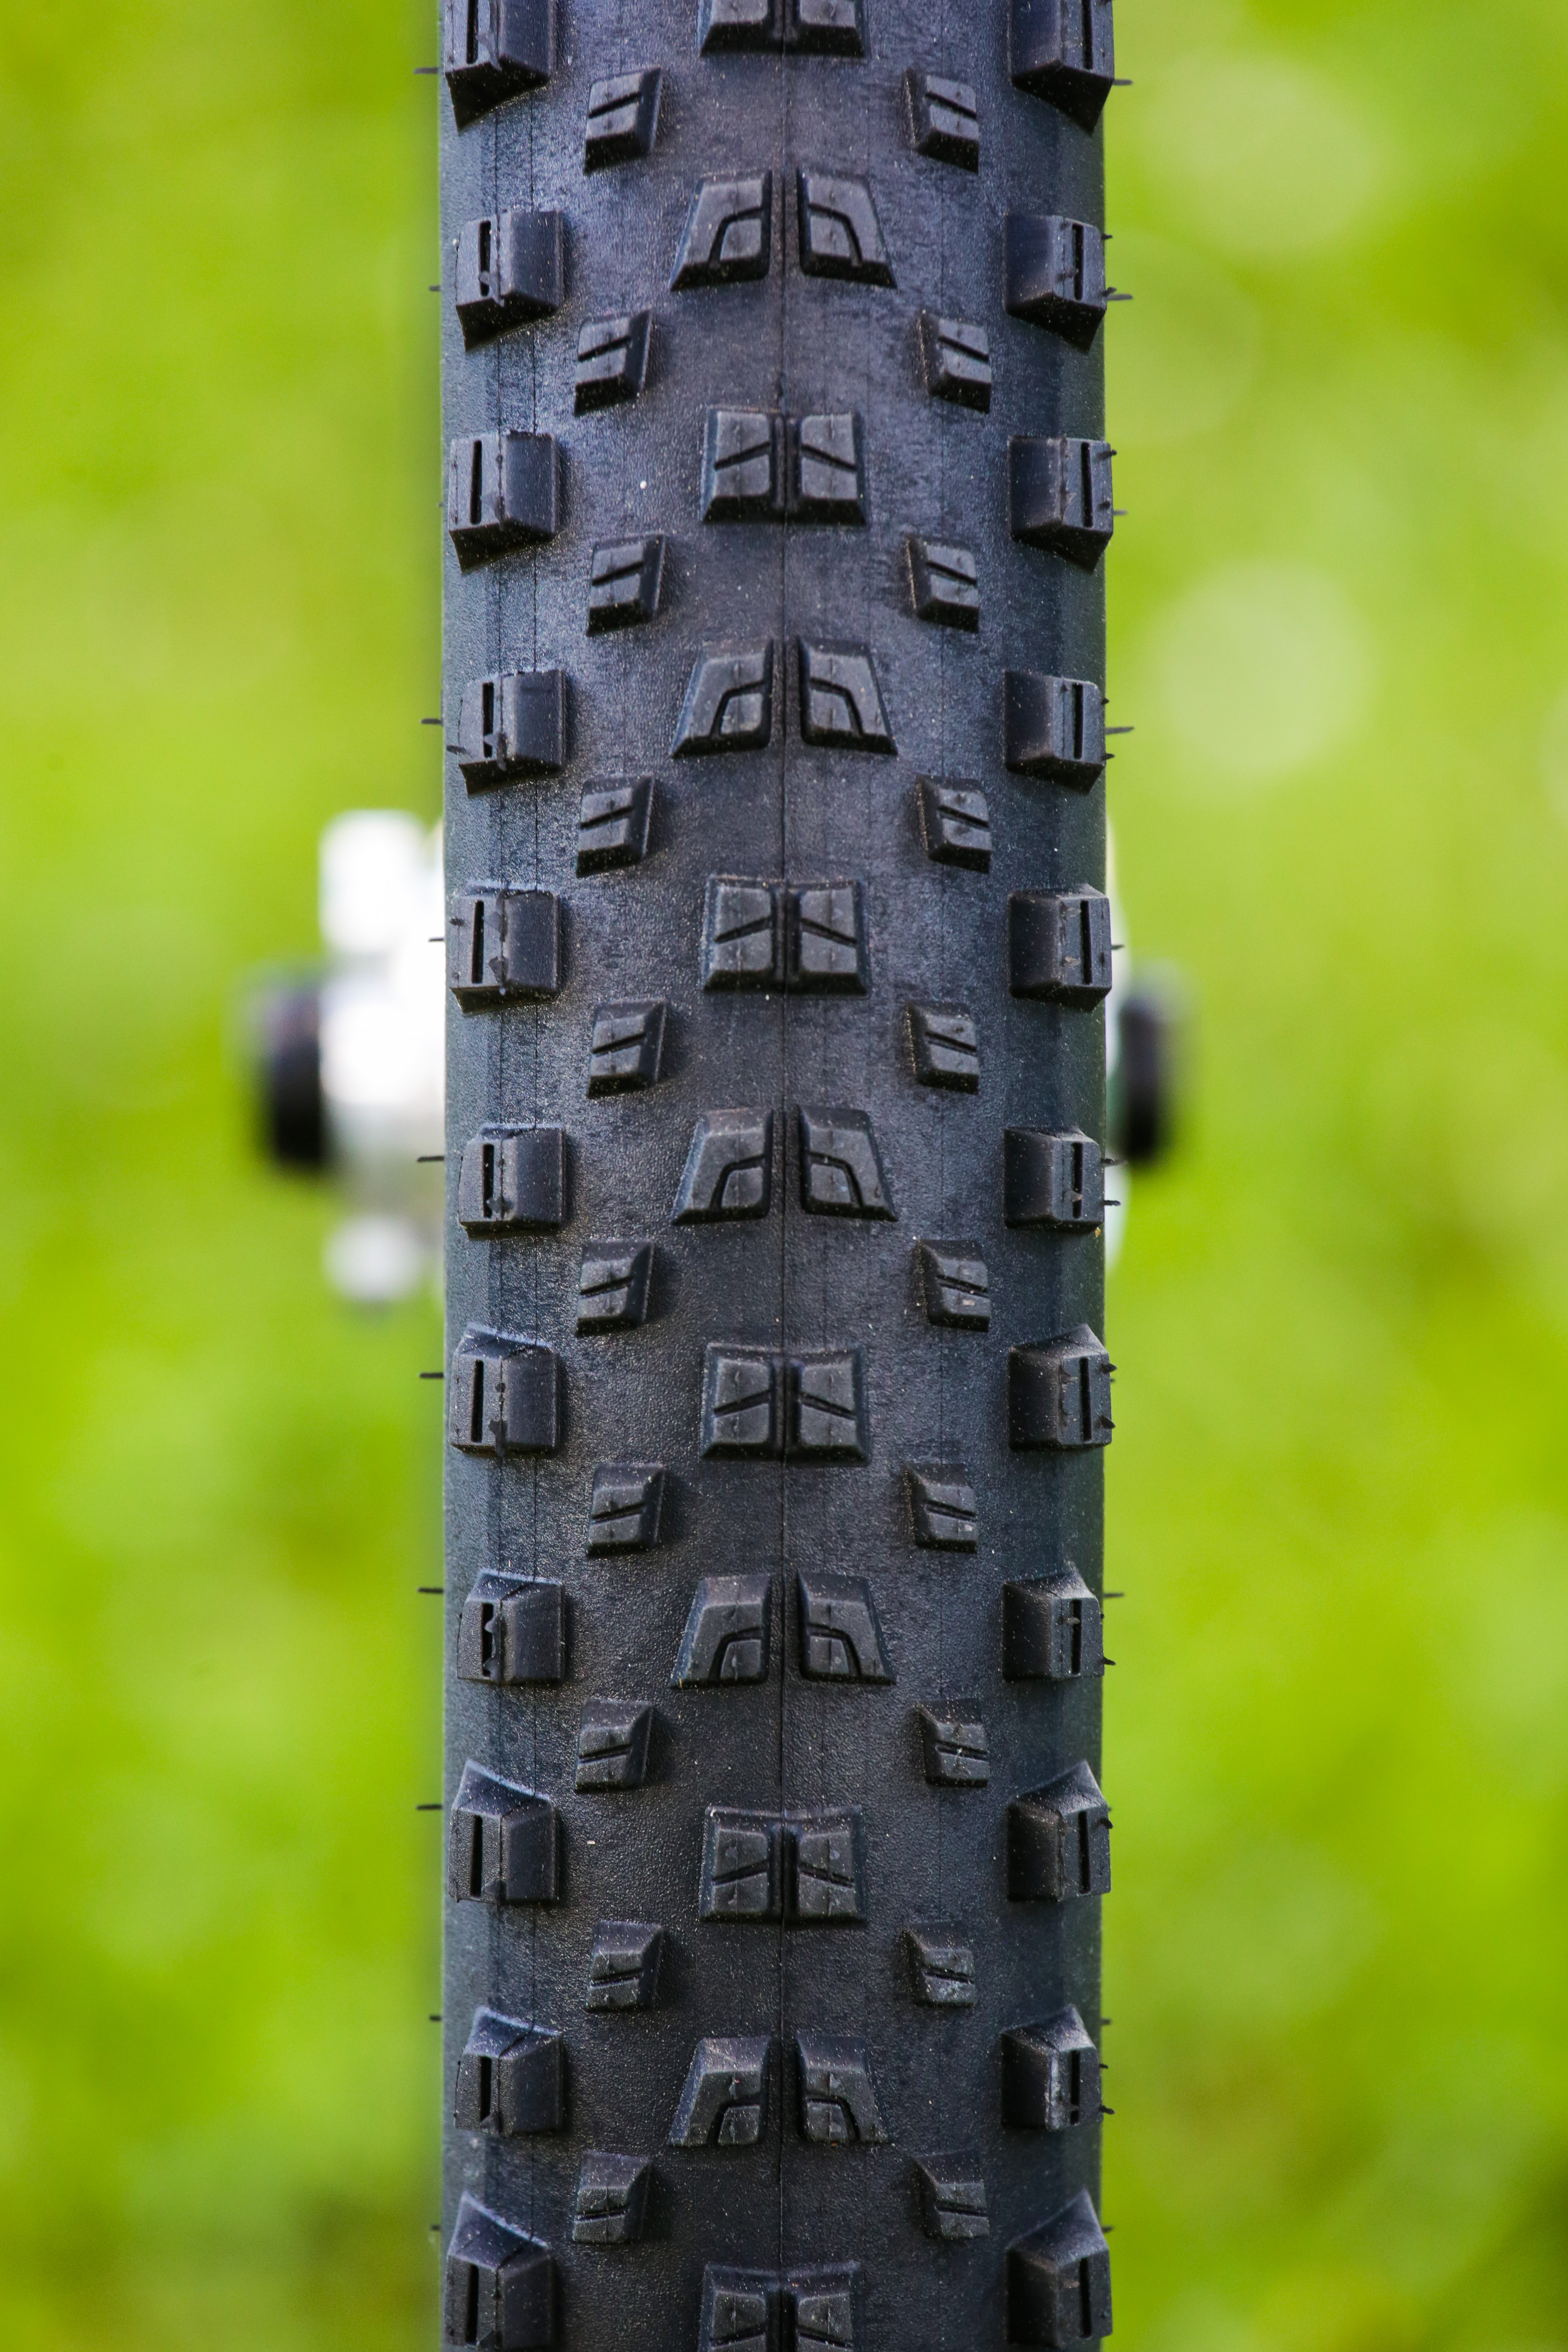 The new Mavic Crossmax Quest Tires come in widths of 2.4, front and back, for maximum purchase in burly conditions. These tires hooked up reliably in a wide variety of conditions—from dry-and-dusty alpine topsoil to loose rock and extended granite sections—but after four days of ridiculous abuse the treads definitely were worn down. These tires would need to be tested side-by-side with other companies' models in the same conditions to determine their comparative longevity. It would be easy to say that the Quest tires wear quickly, but we were riding in some seriously burly conditions—including numerous stages from the notoriously chunky Trans-Provence stage race—so a considerable amount of wear should probably be expected.